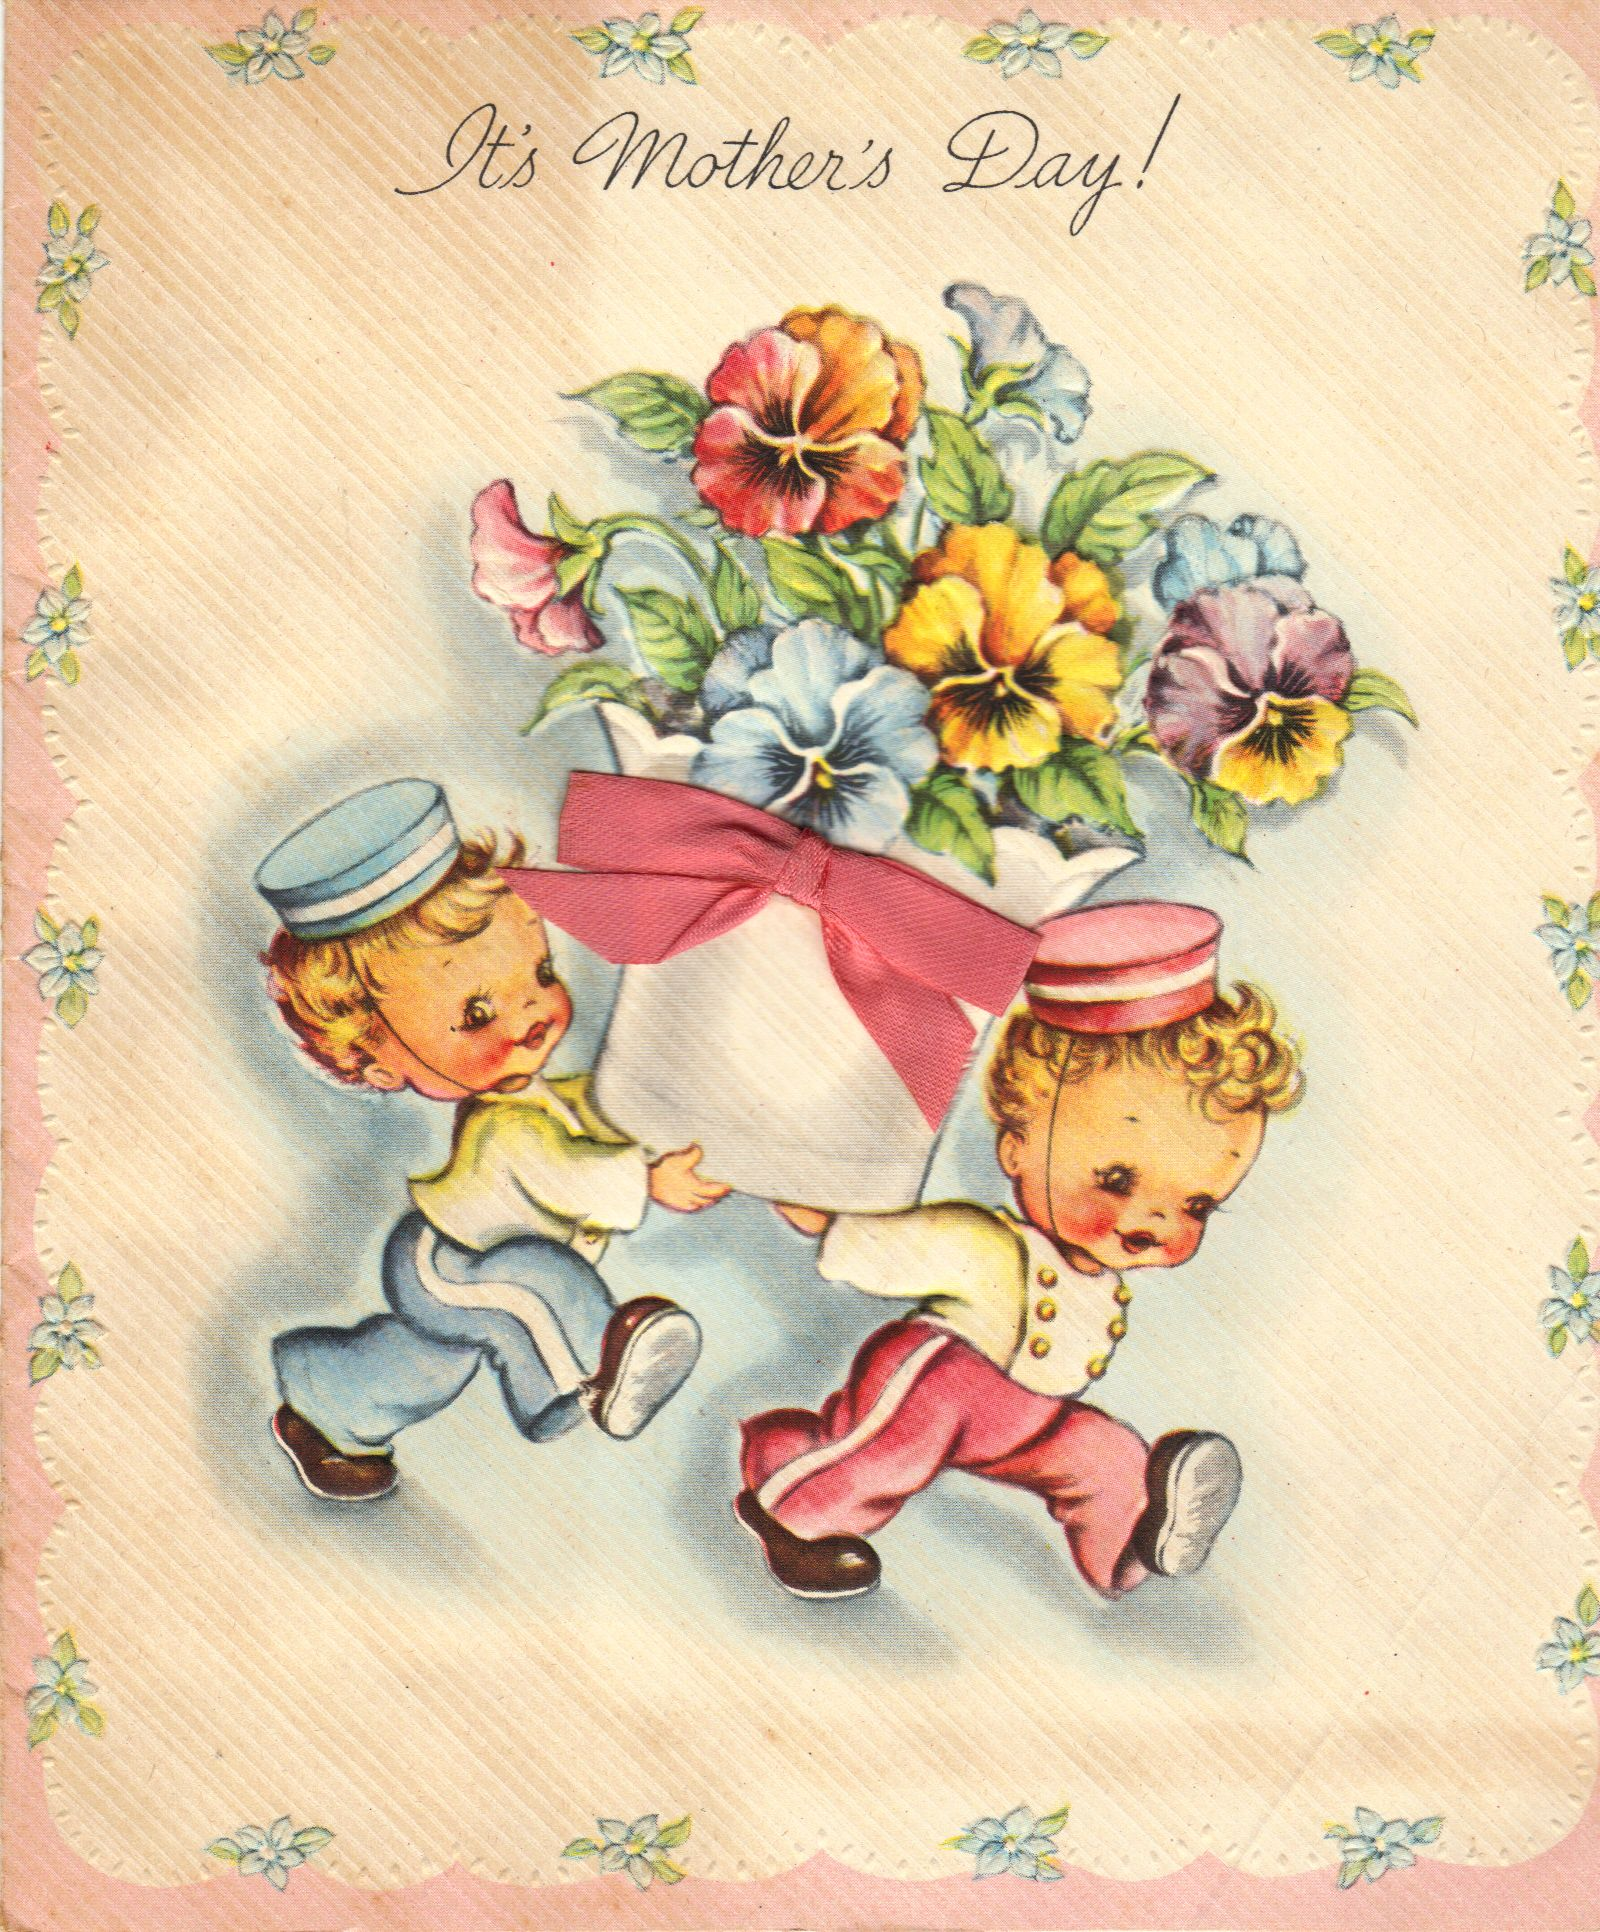 Delightful Mothers Day Greeting Card Featuring Tiny Bellhops